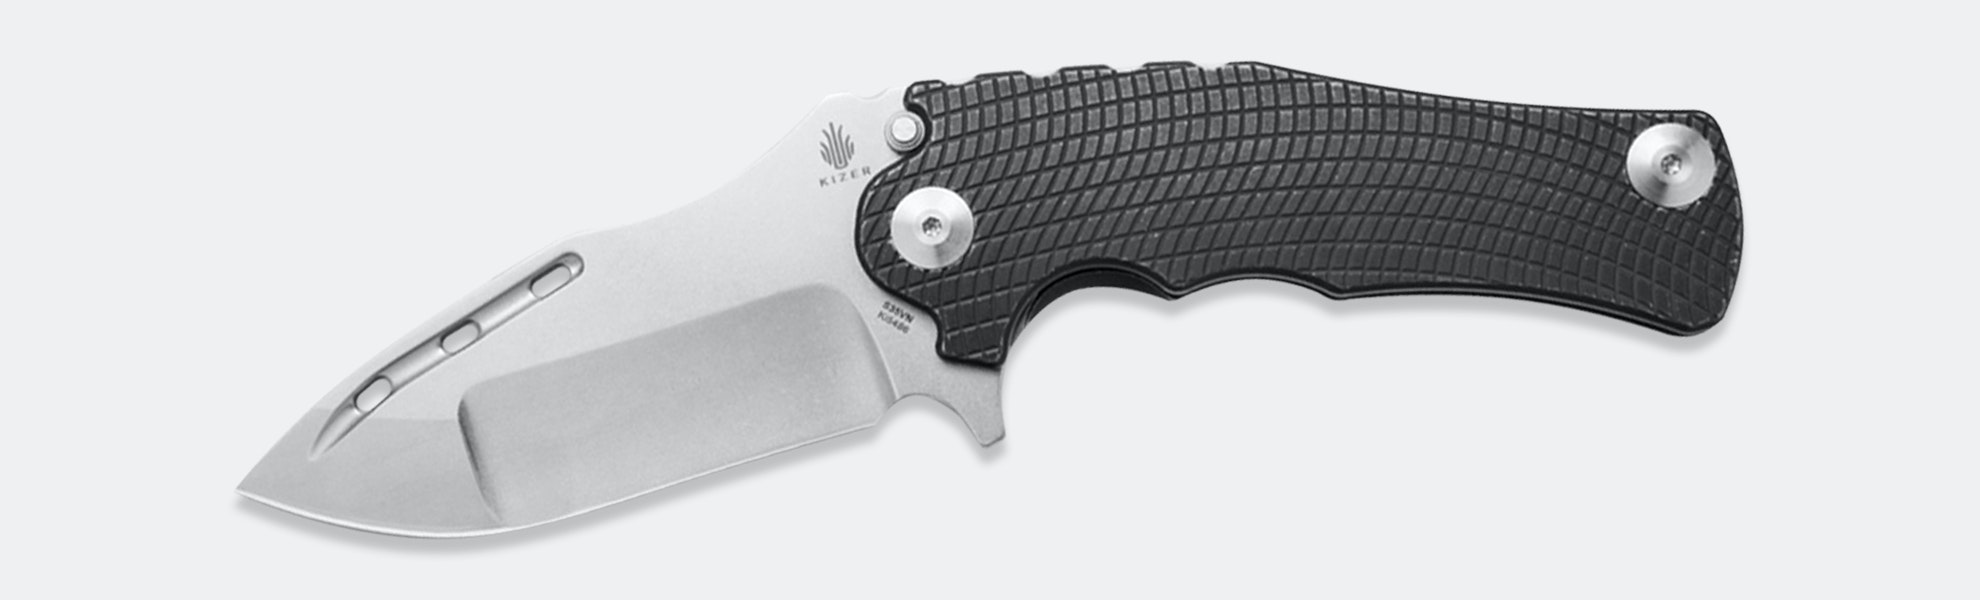 Kizer Ki5486 Maddox S35VN Folding Knife